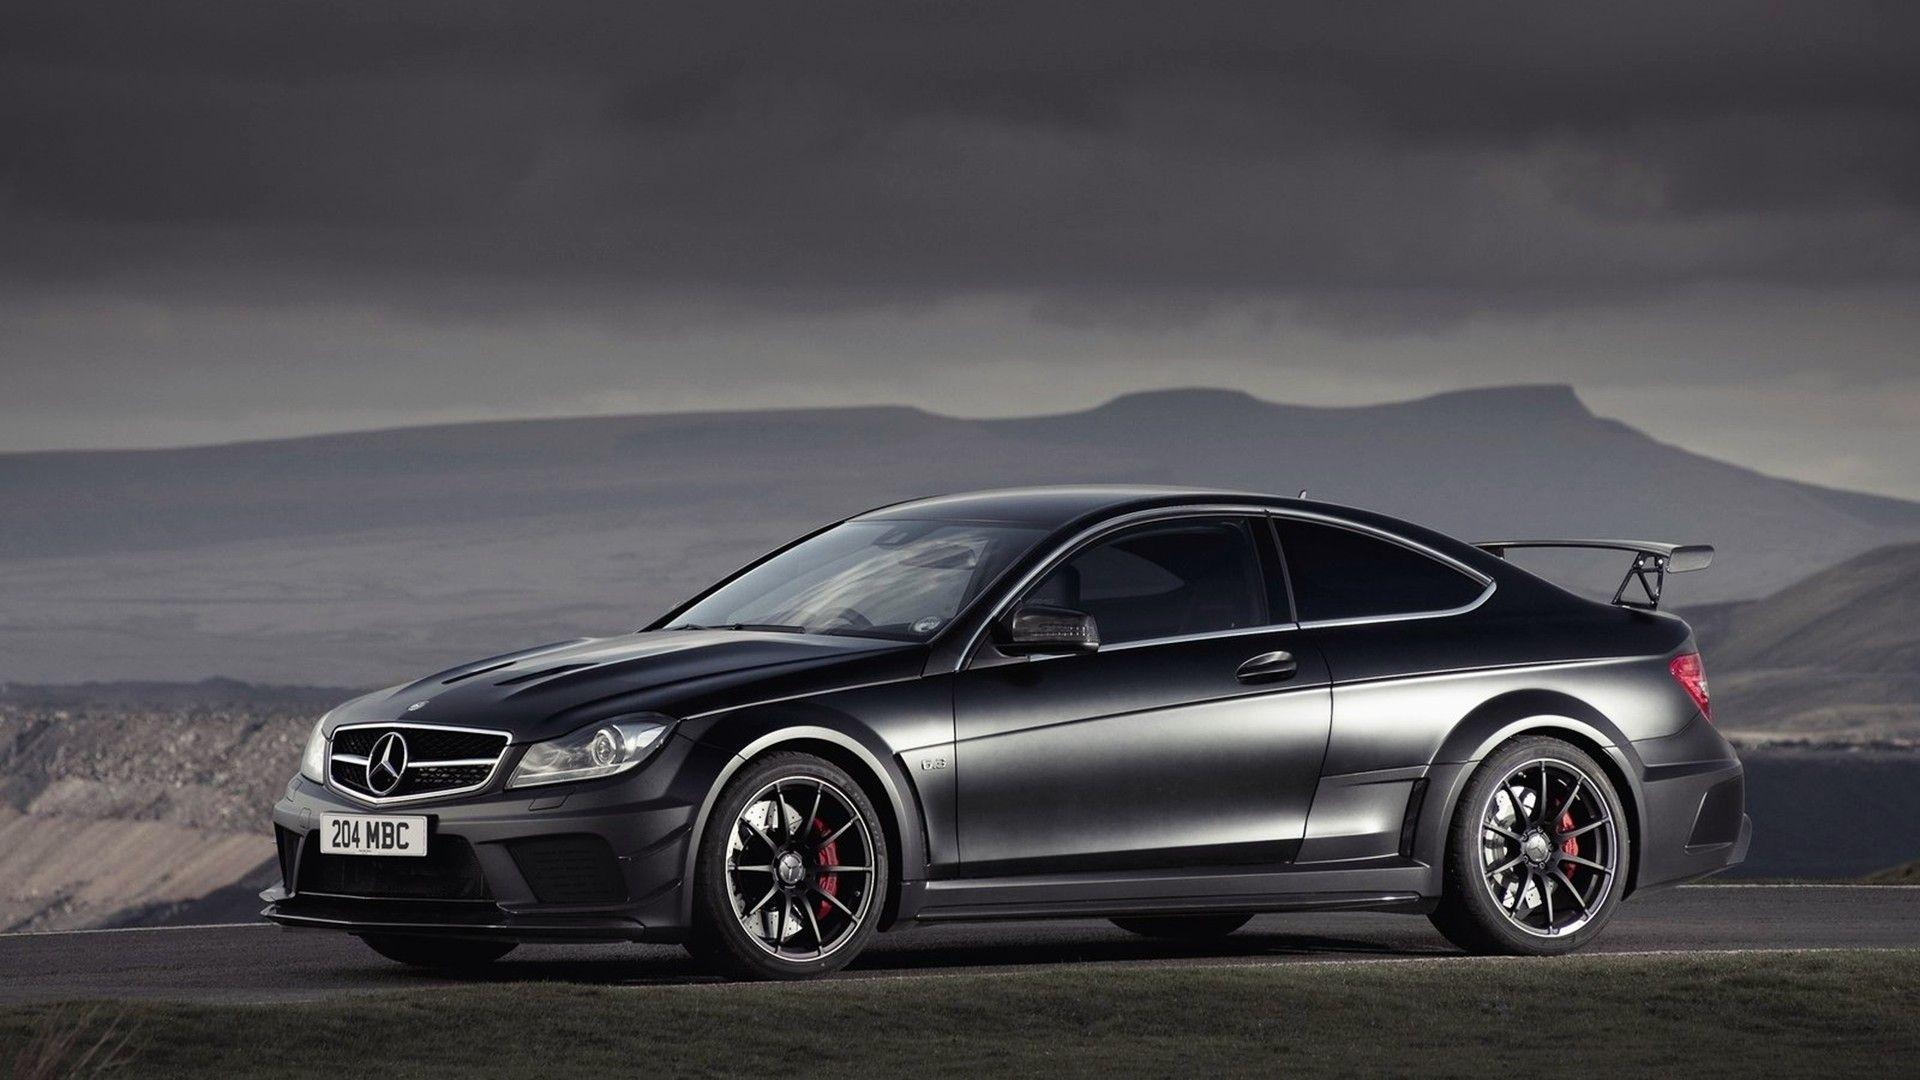 wallpapers for mercedes benz amg logo wallpaper - Mercedes Benz Logo Wallpaper